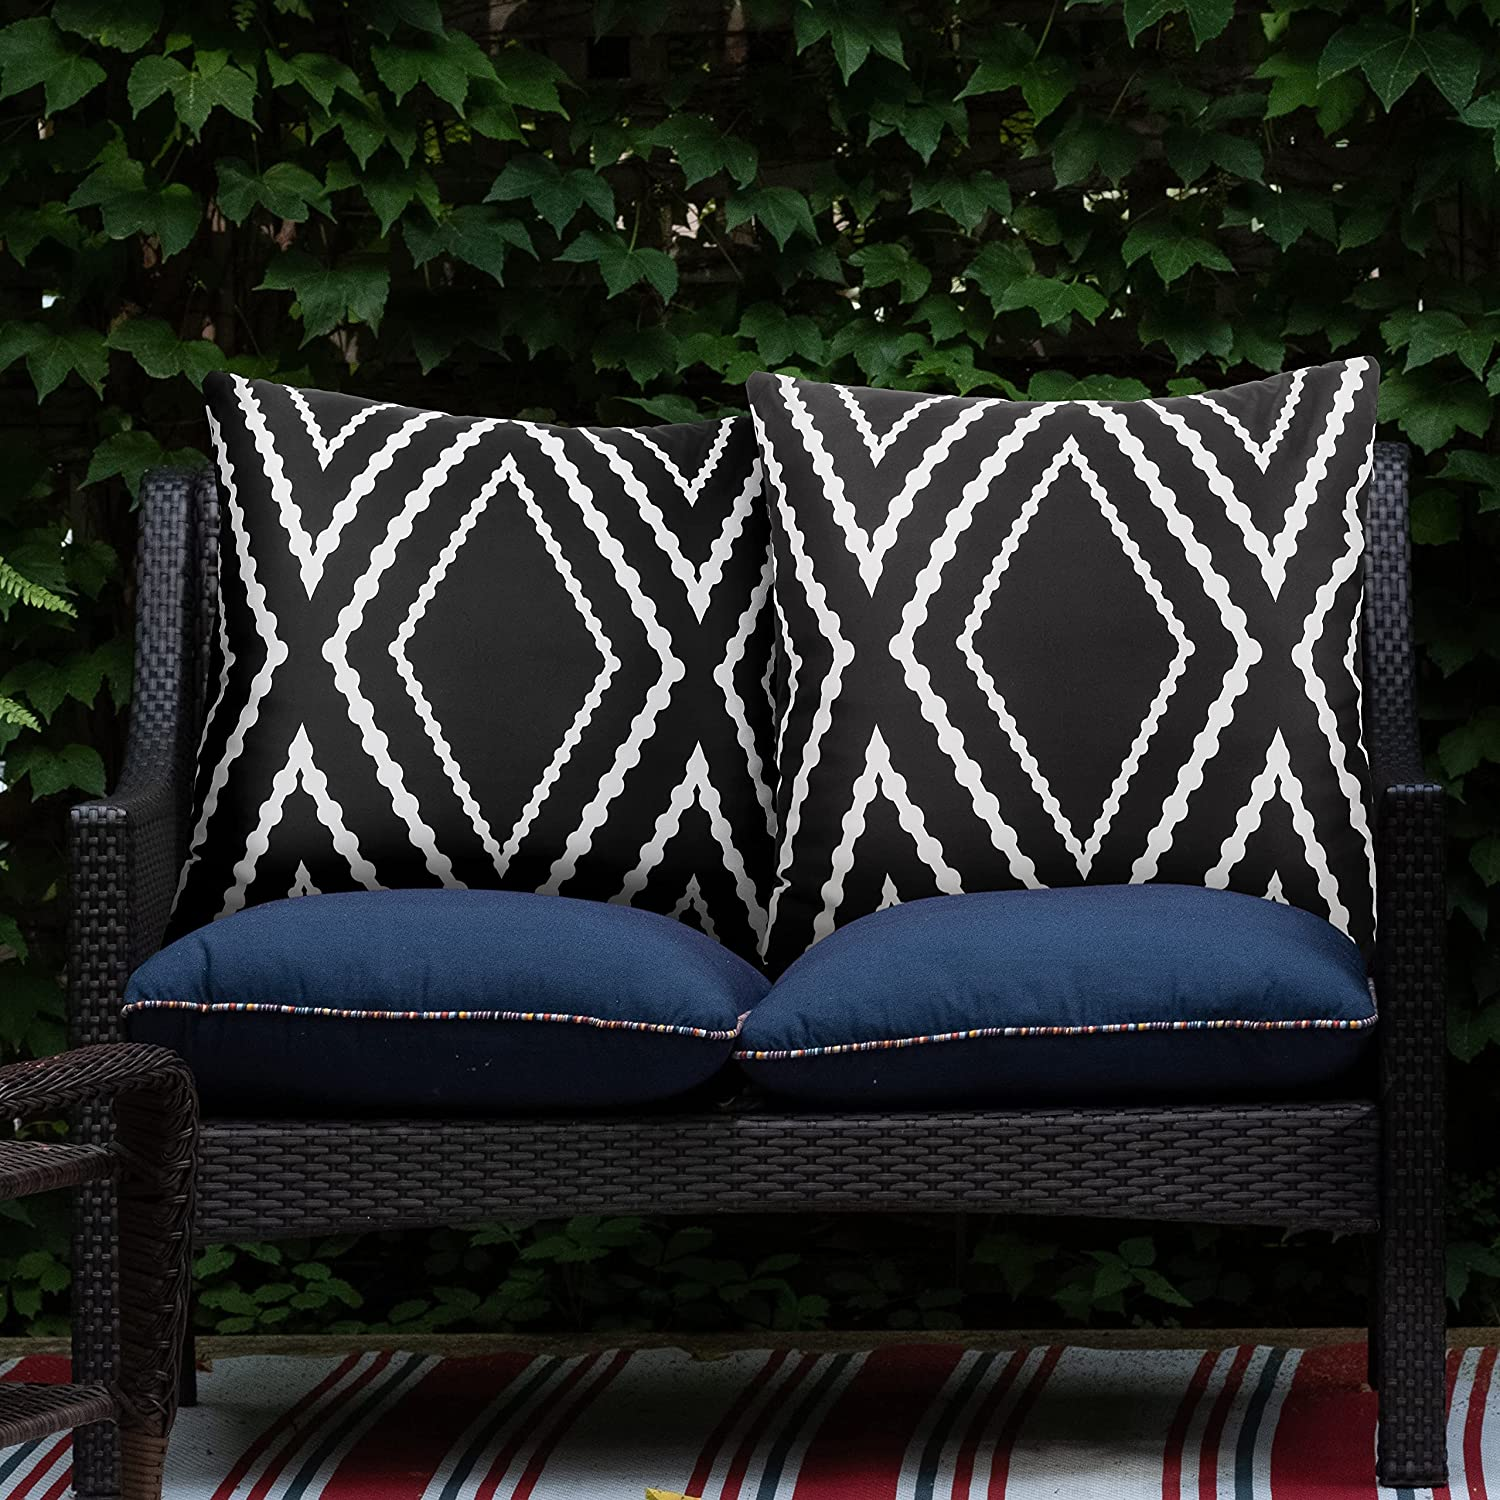 Adabana Outdoor 70% OFF Outlet Waterproof Direct store Boho Throw Covers Geometric Pillow Pi